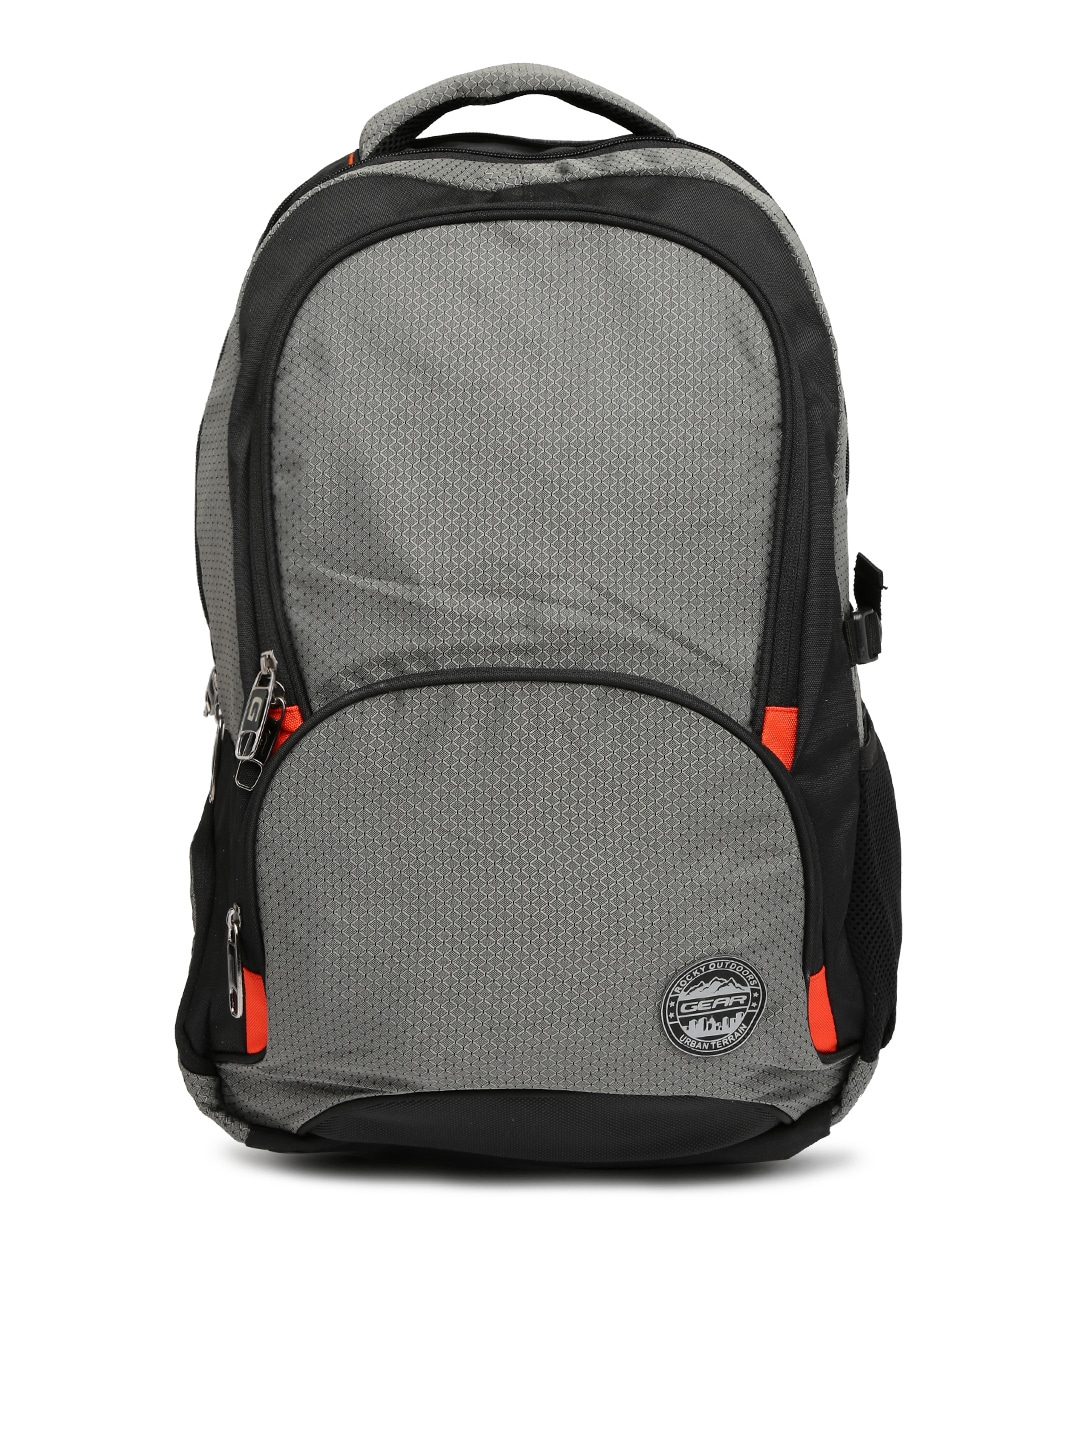 d8a9def8900b Gear Backpacks - Buy Gear Bags and Backpacks Online in India